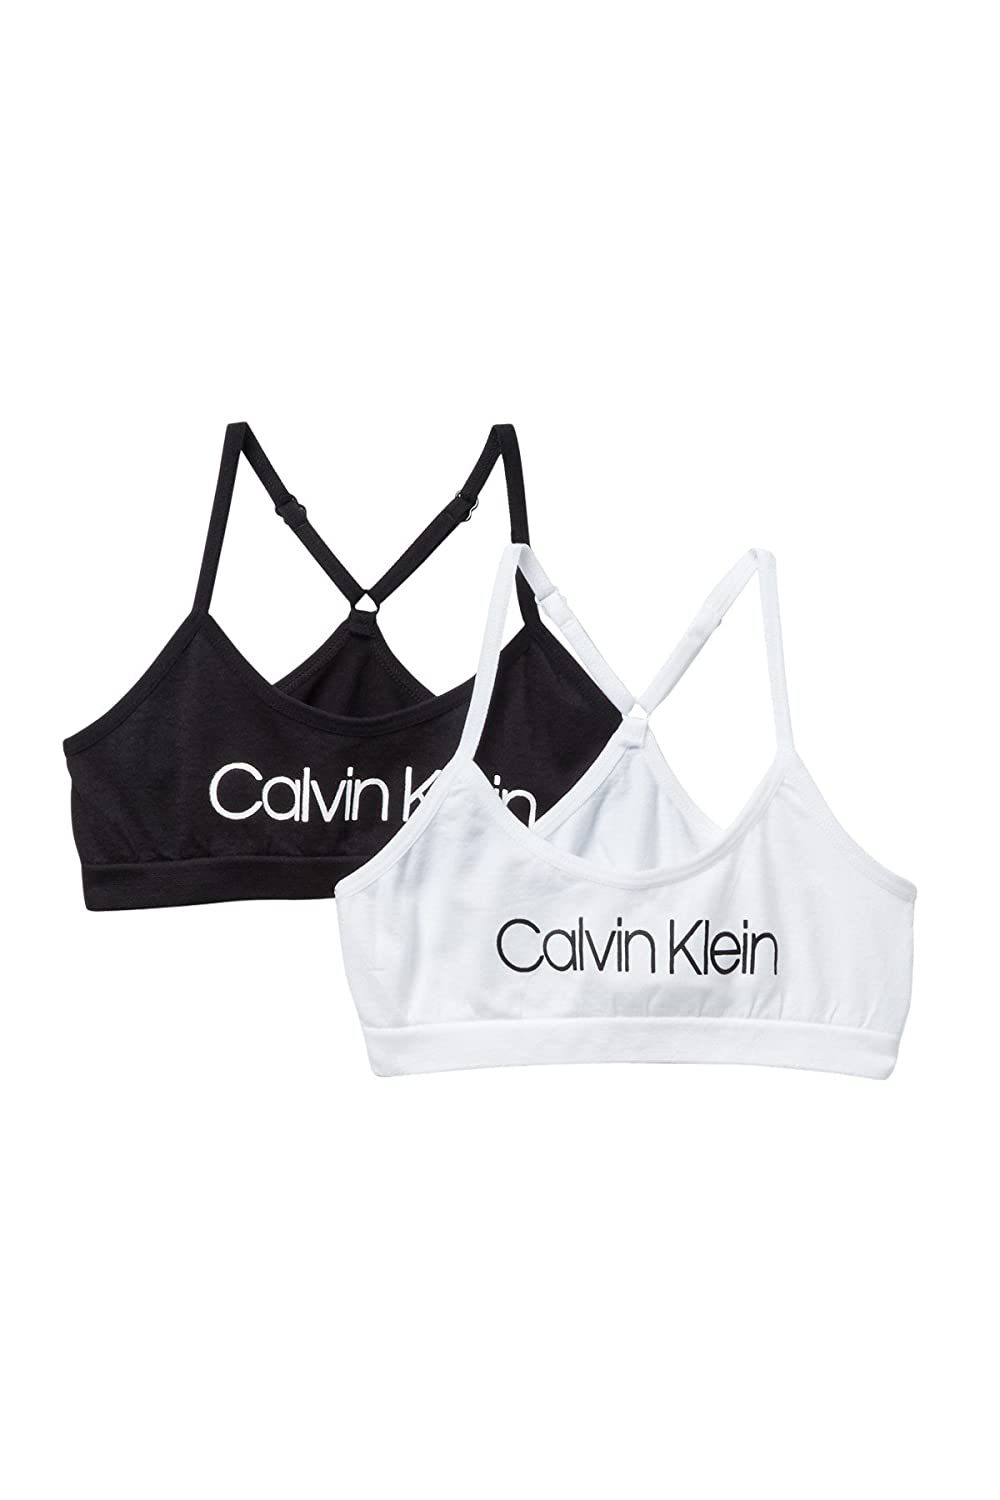 Calvin Klein Big Girls' Seamless Racerback Crop Bra (Pack of 2)